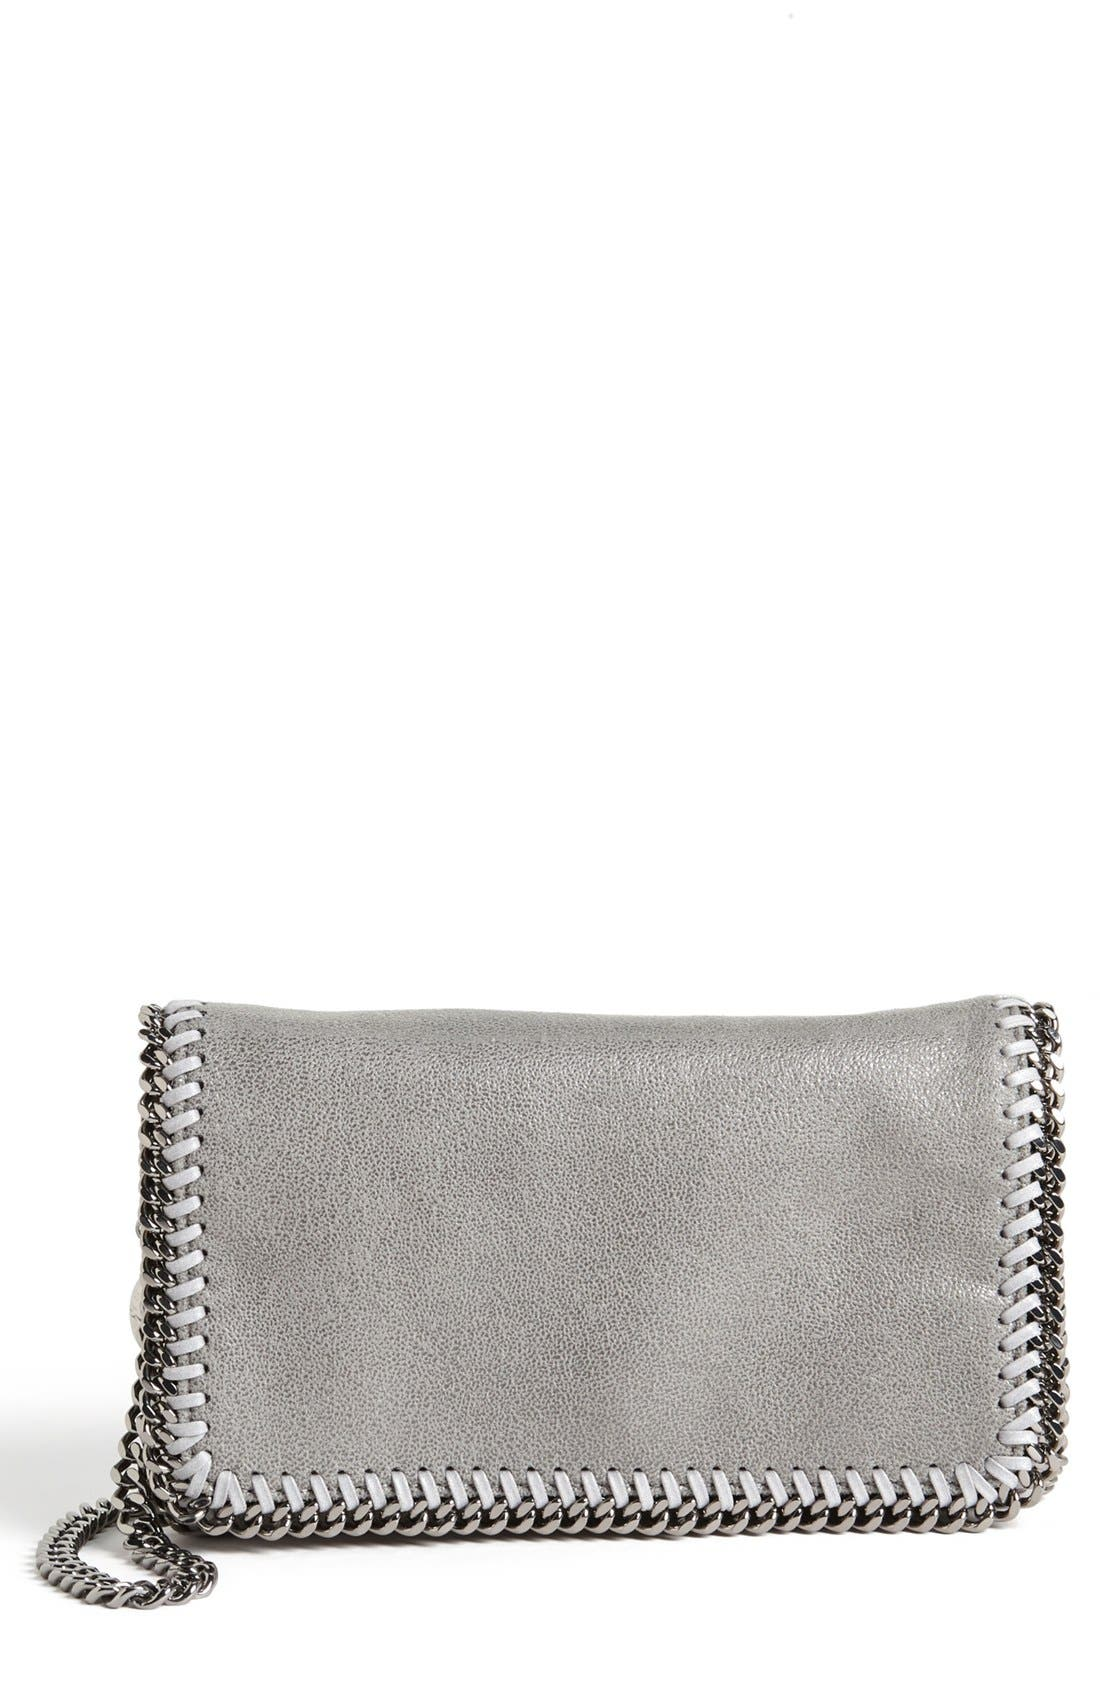 Stella McCartney 'Falabella - Shaggy Deer' Faux Leather Crossbody Bag